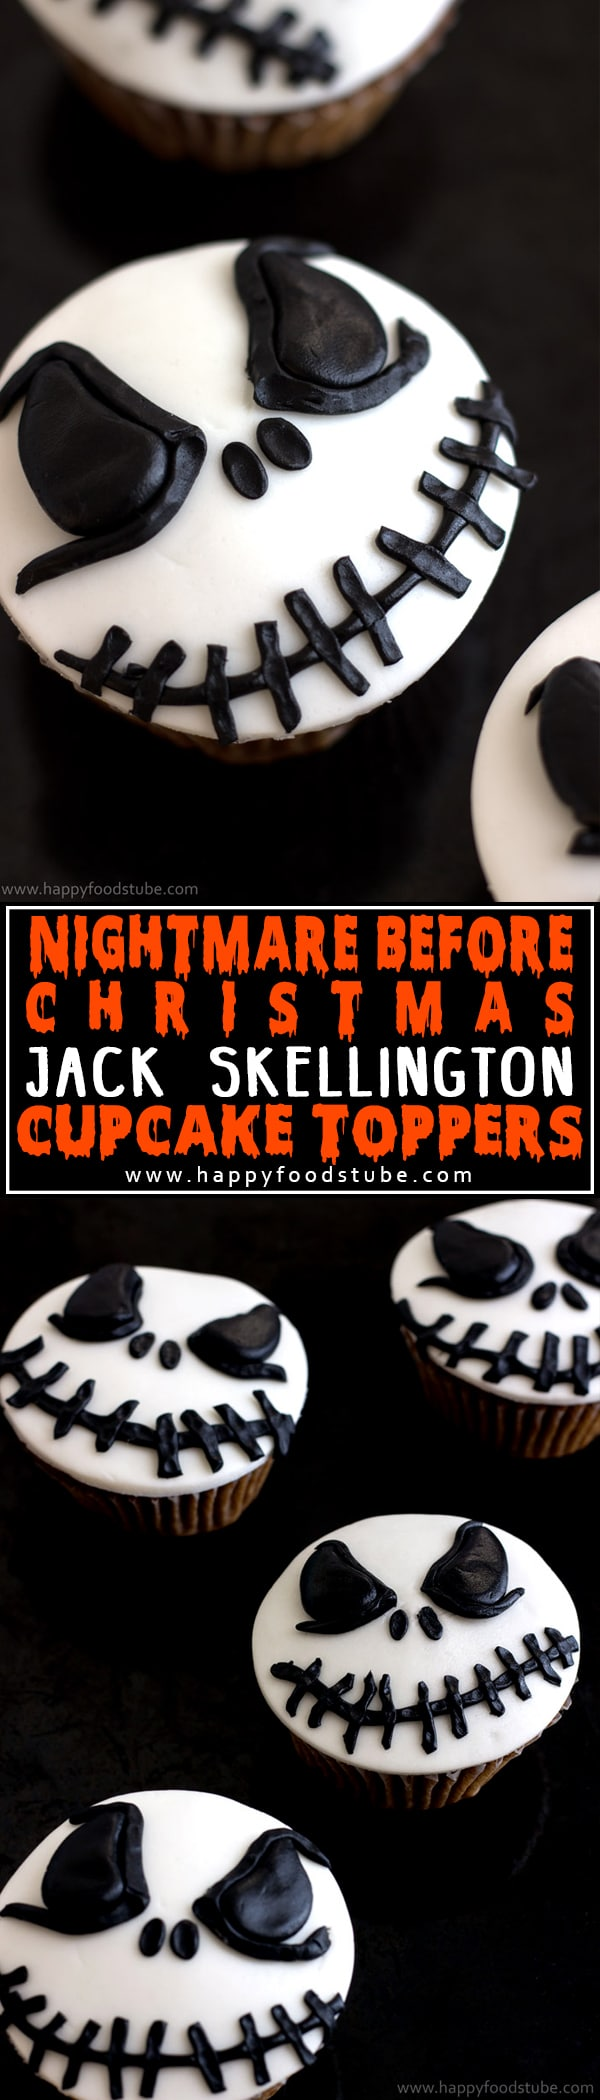 How to make Nightmare Before Christmas Jack Skellington Cupcake Toppers. Easy cake/cupcake decorating tutorial! | happyfoodstube.com